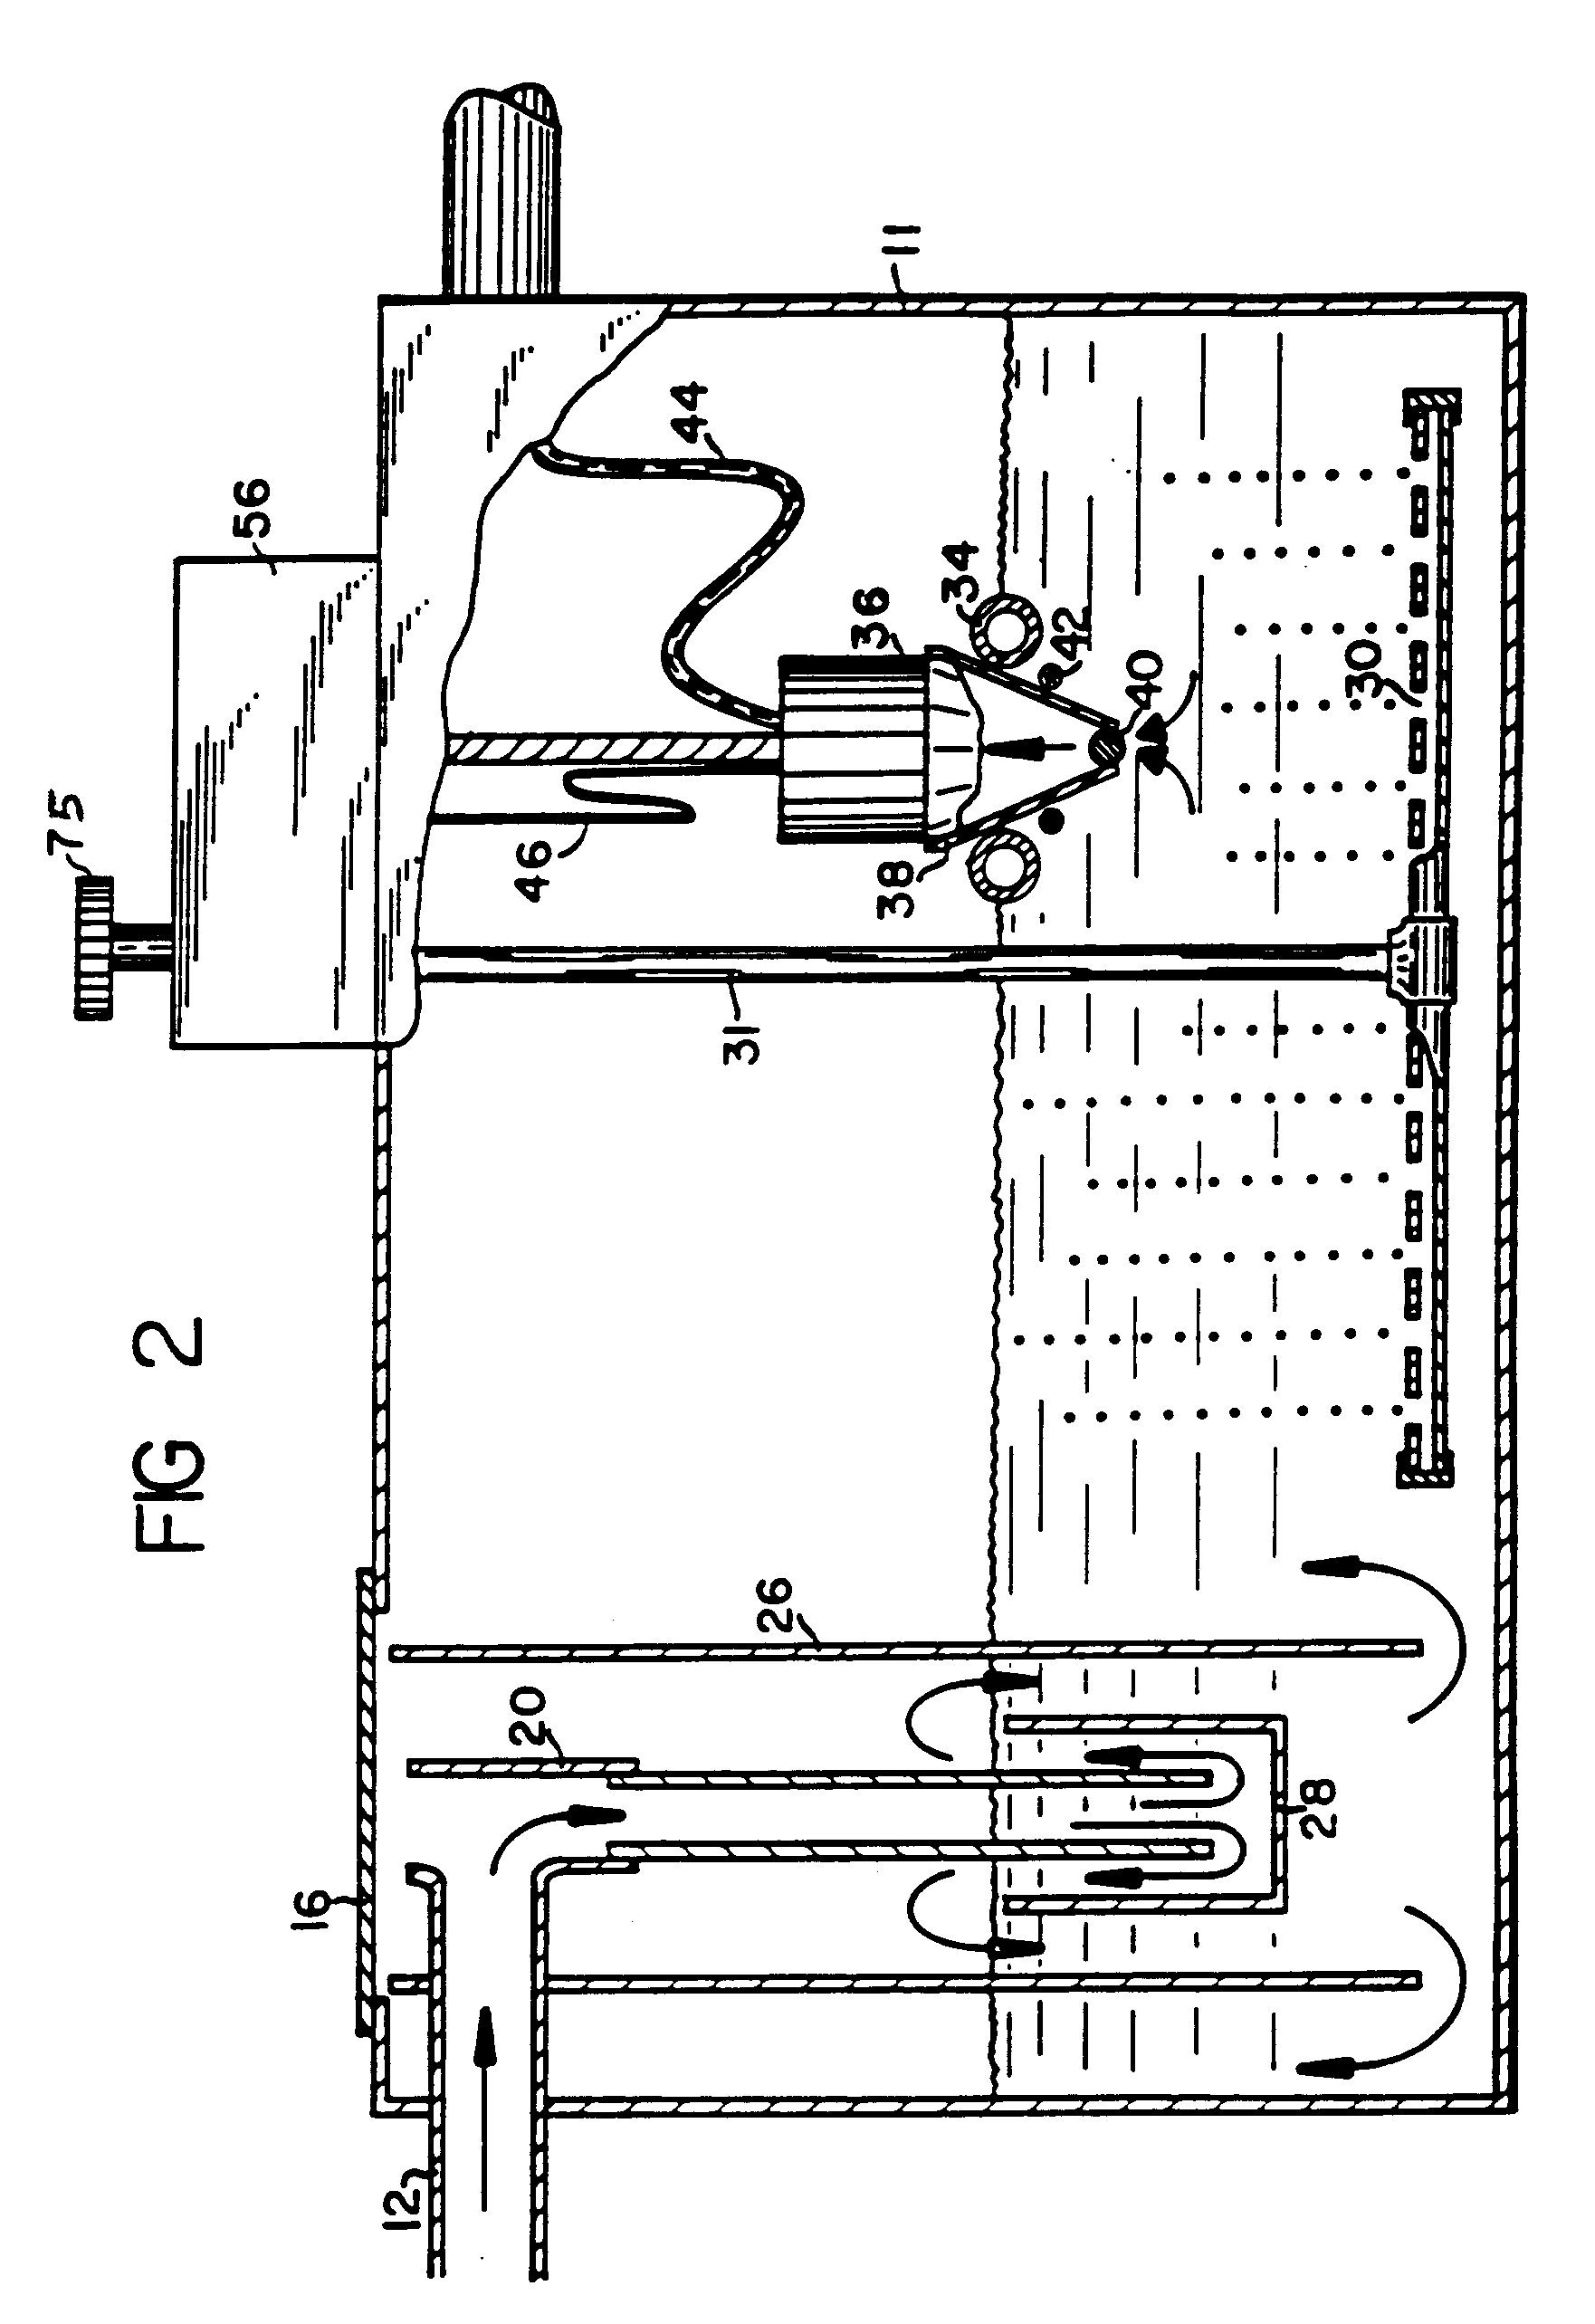 patent ep0575567b1 - wastewater treatment process